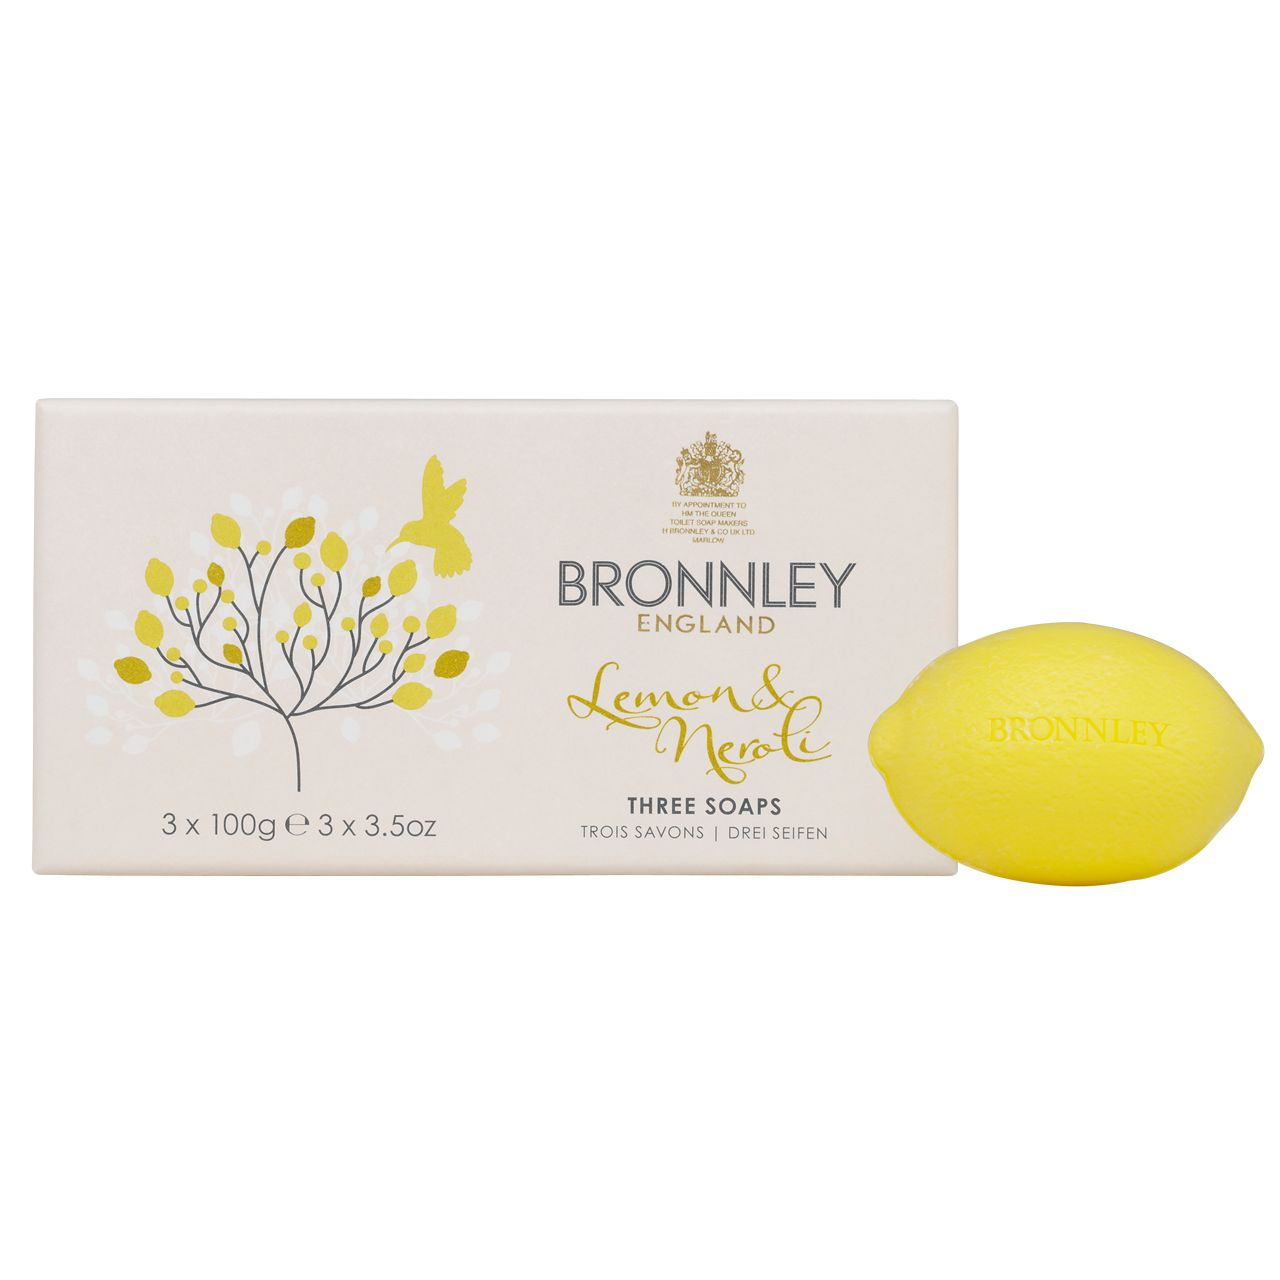 Lemon and Neroli 3x100g Soap